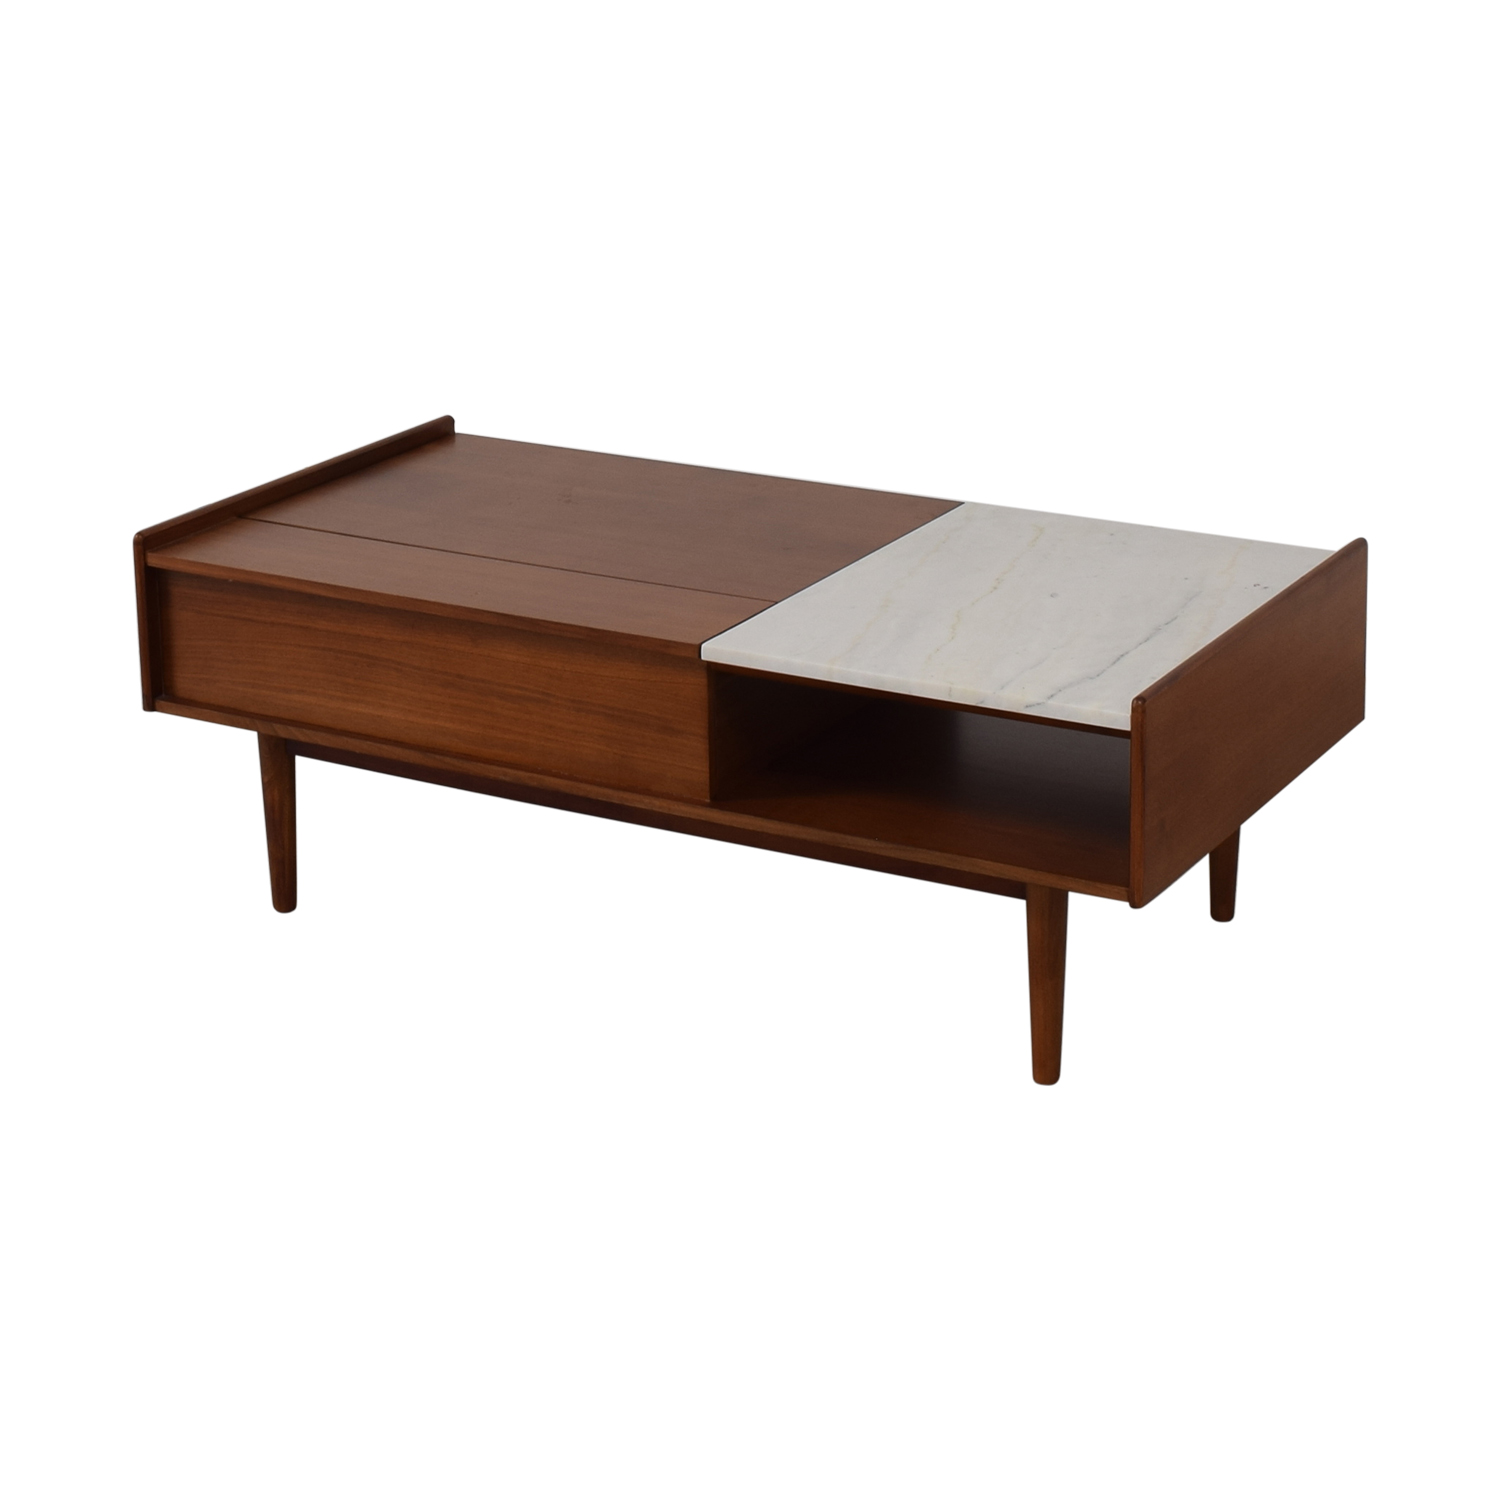 West Elm West Elm Mid Century Pop-Up Coffee Table used